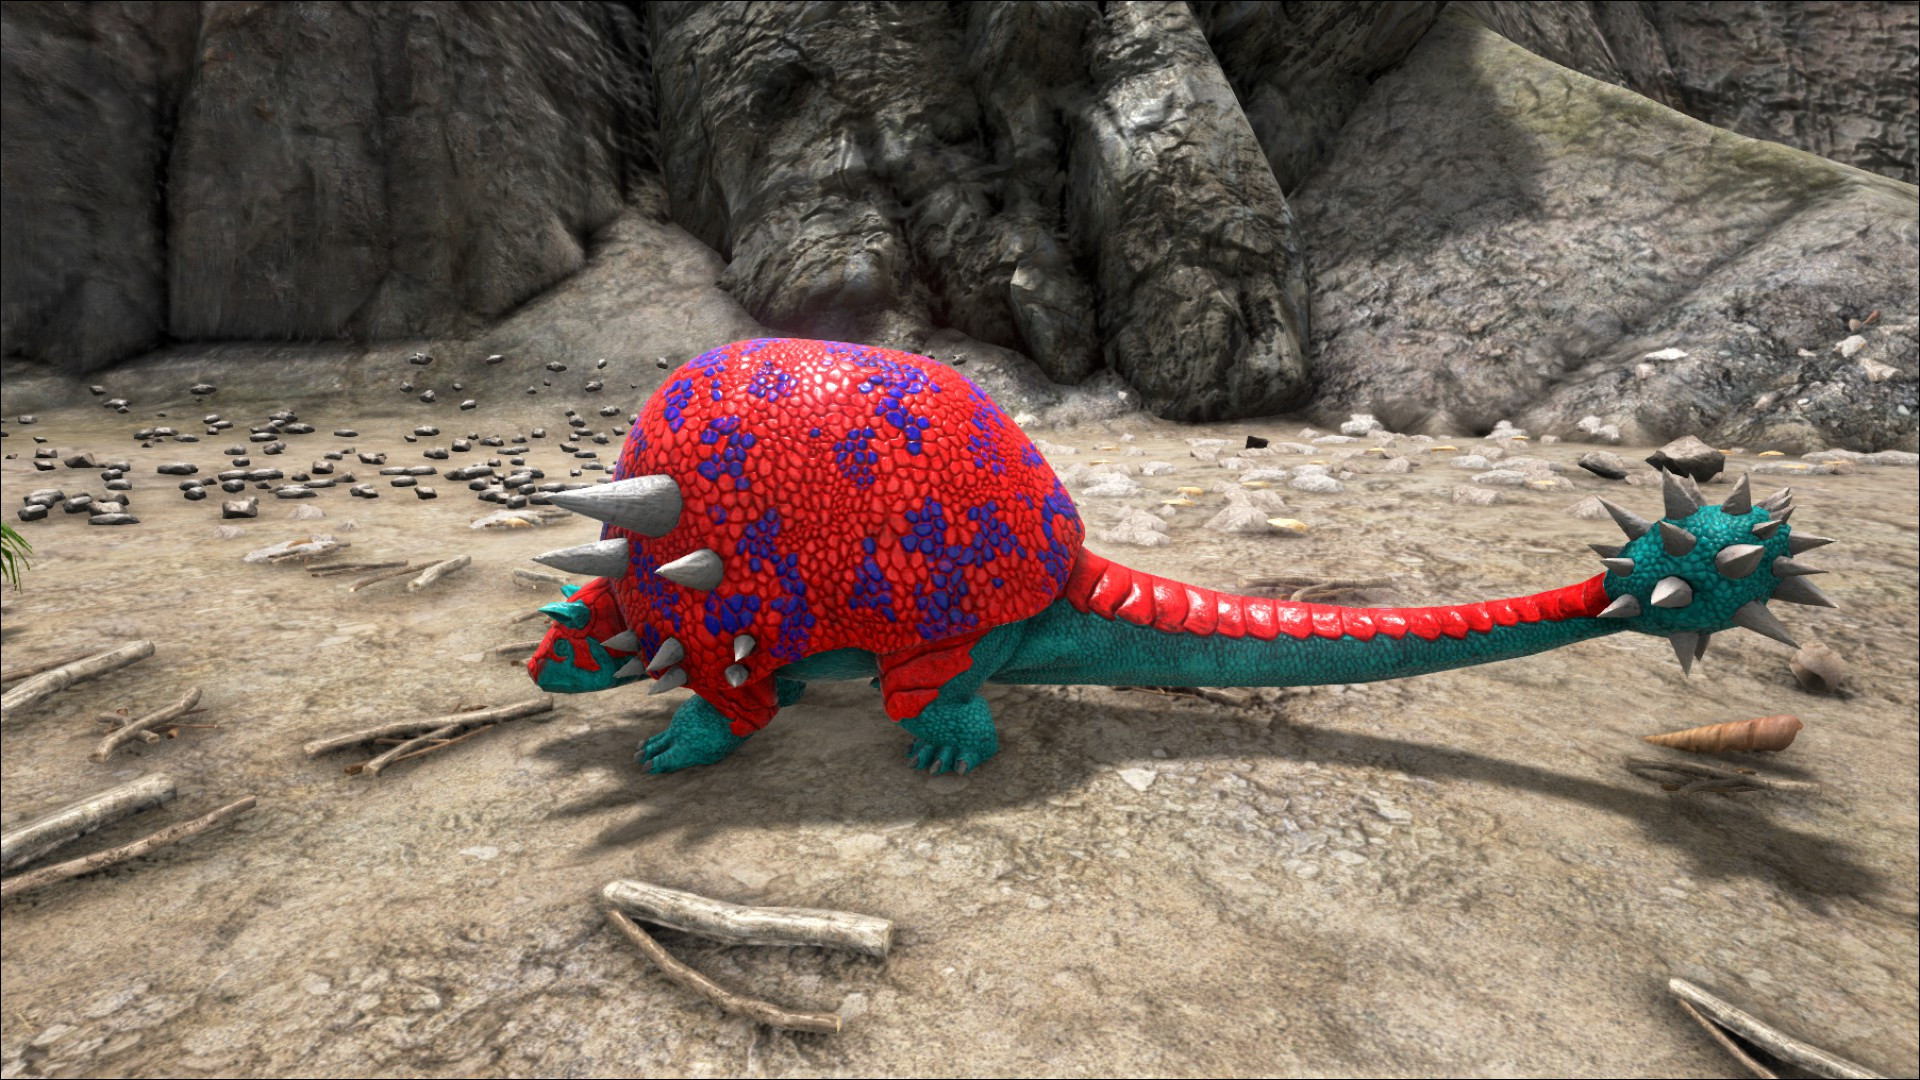 Best ideas about Ark Paint Colors . Save or Pin Steam munity Guide ARK Creature Color Regions Now.